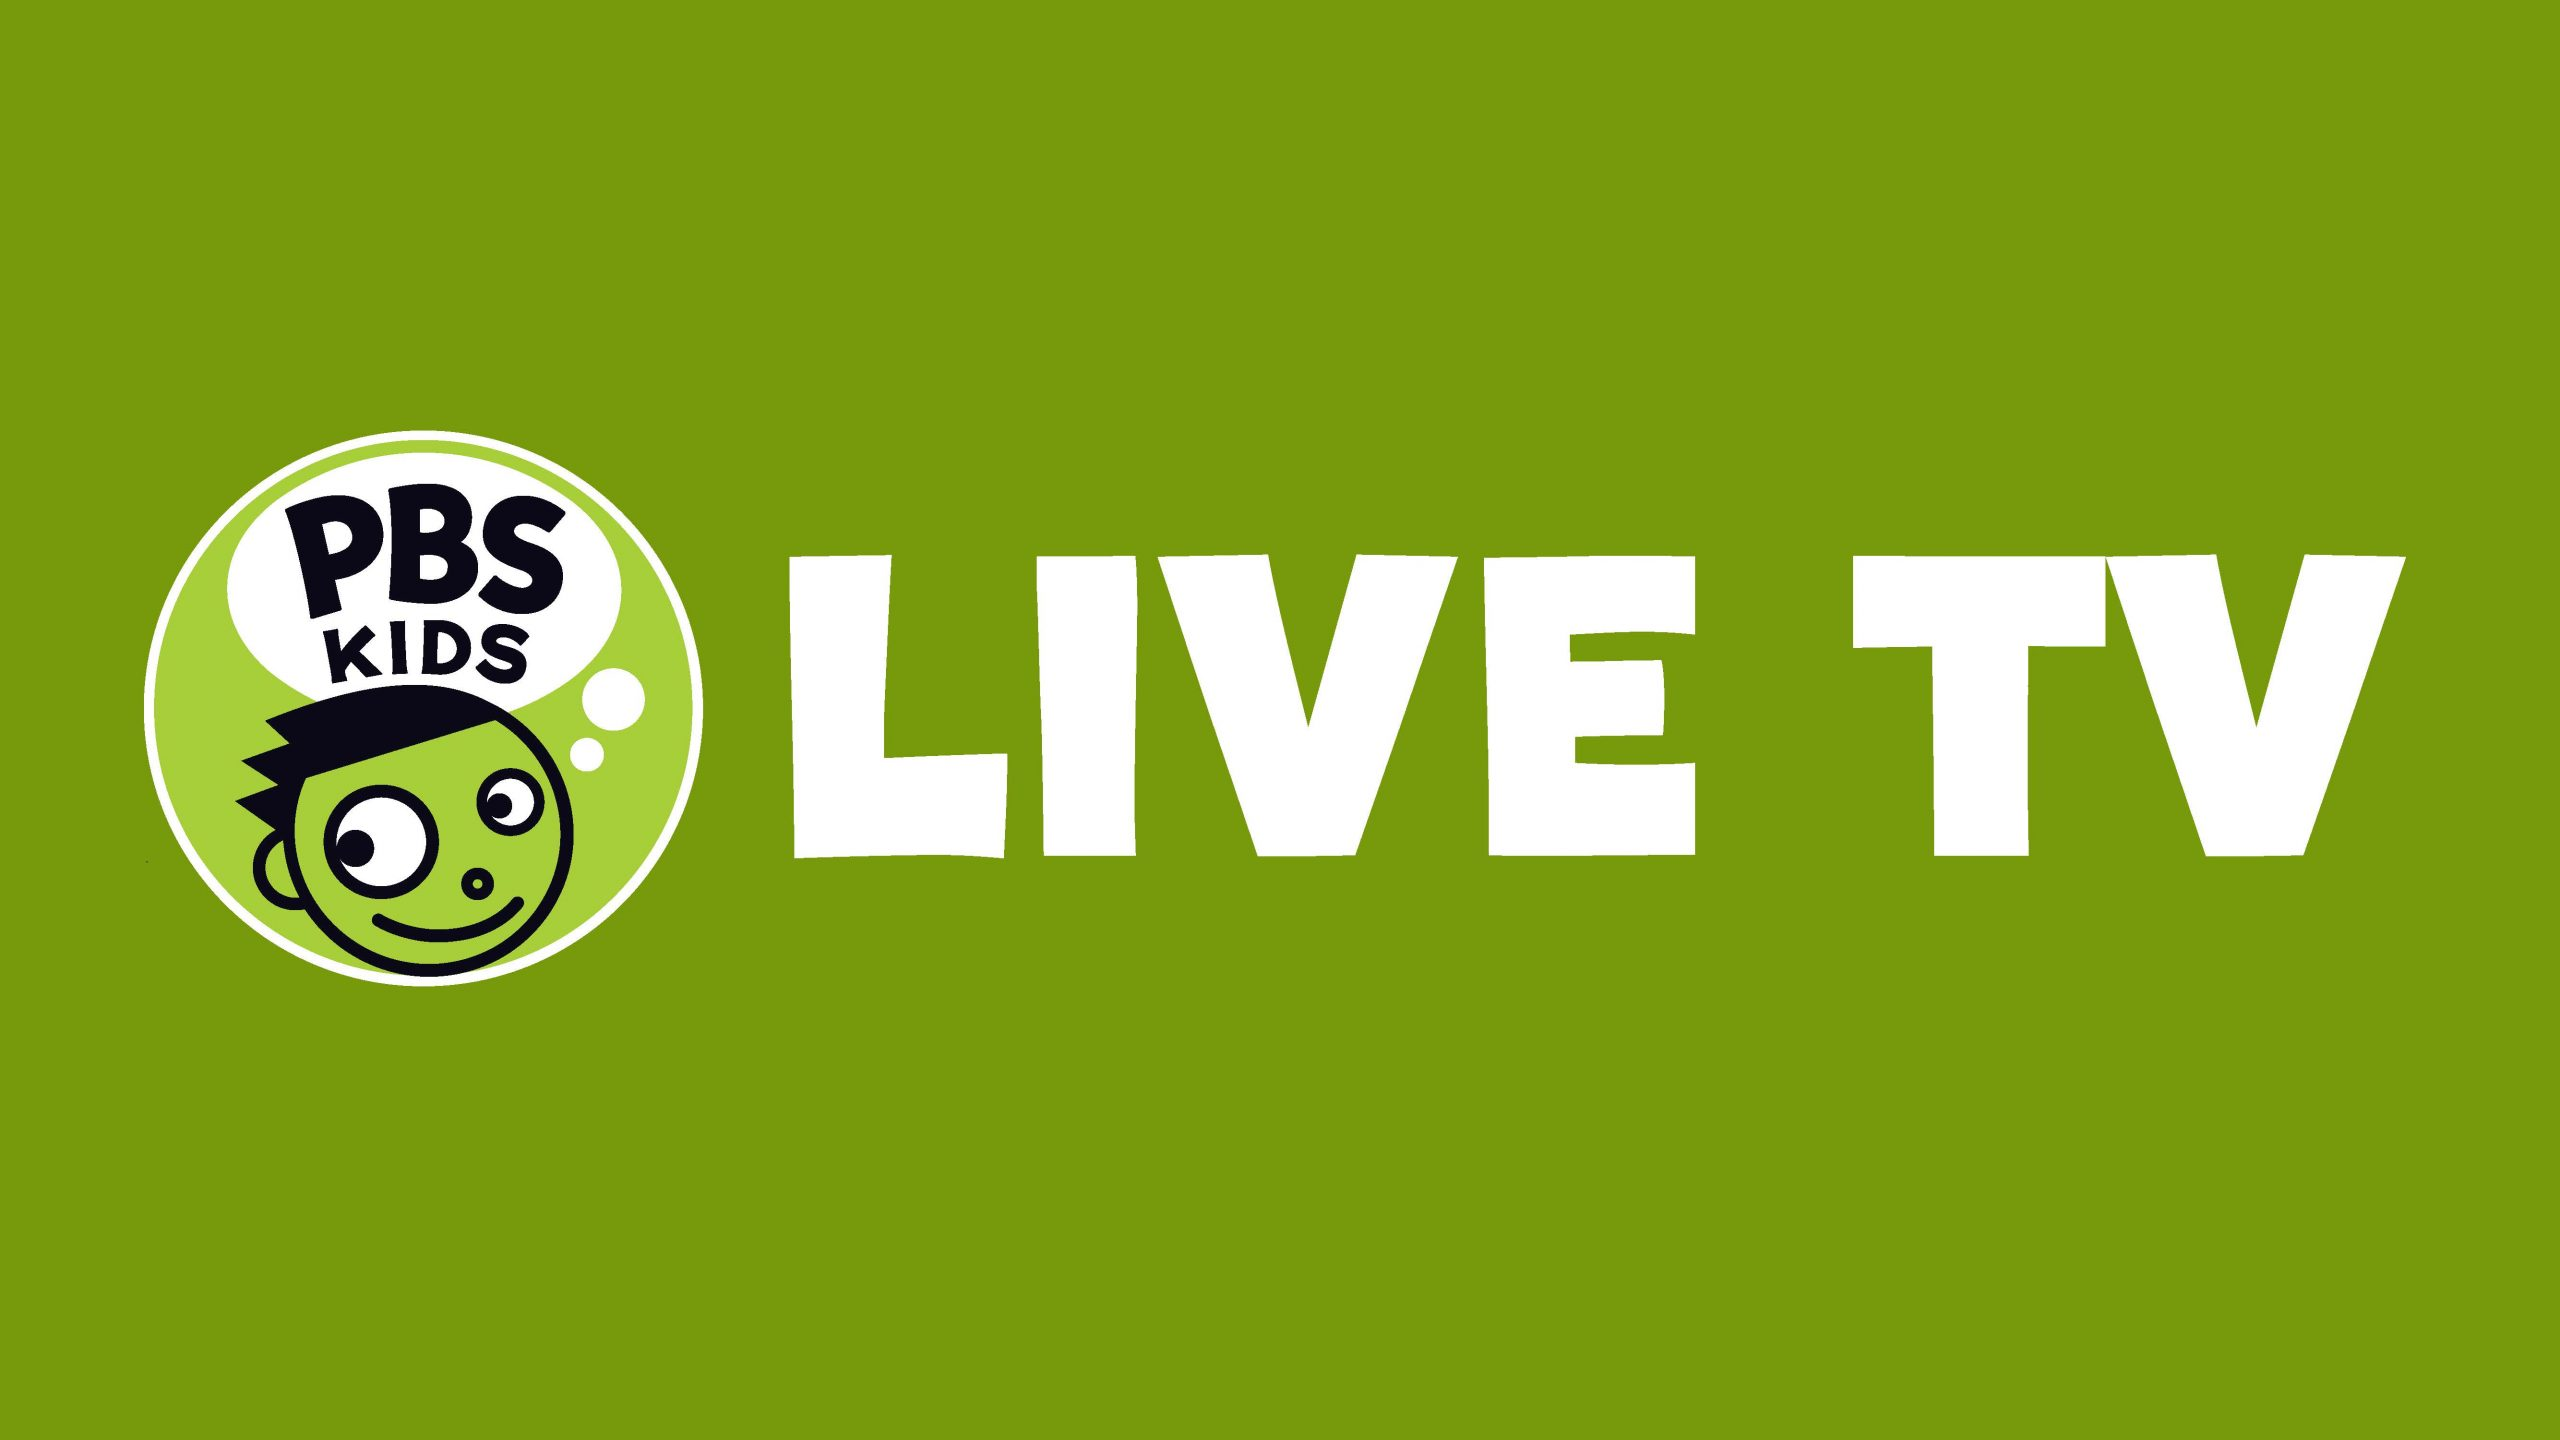 PBS KIDS logo with the words LIVE TV on a green background.